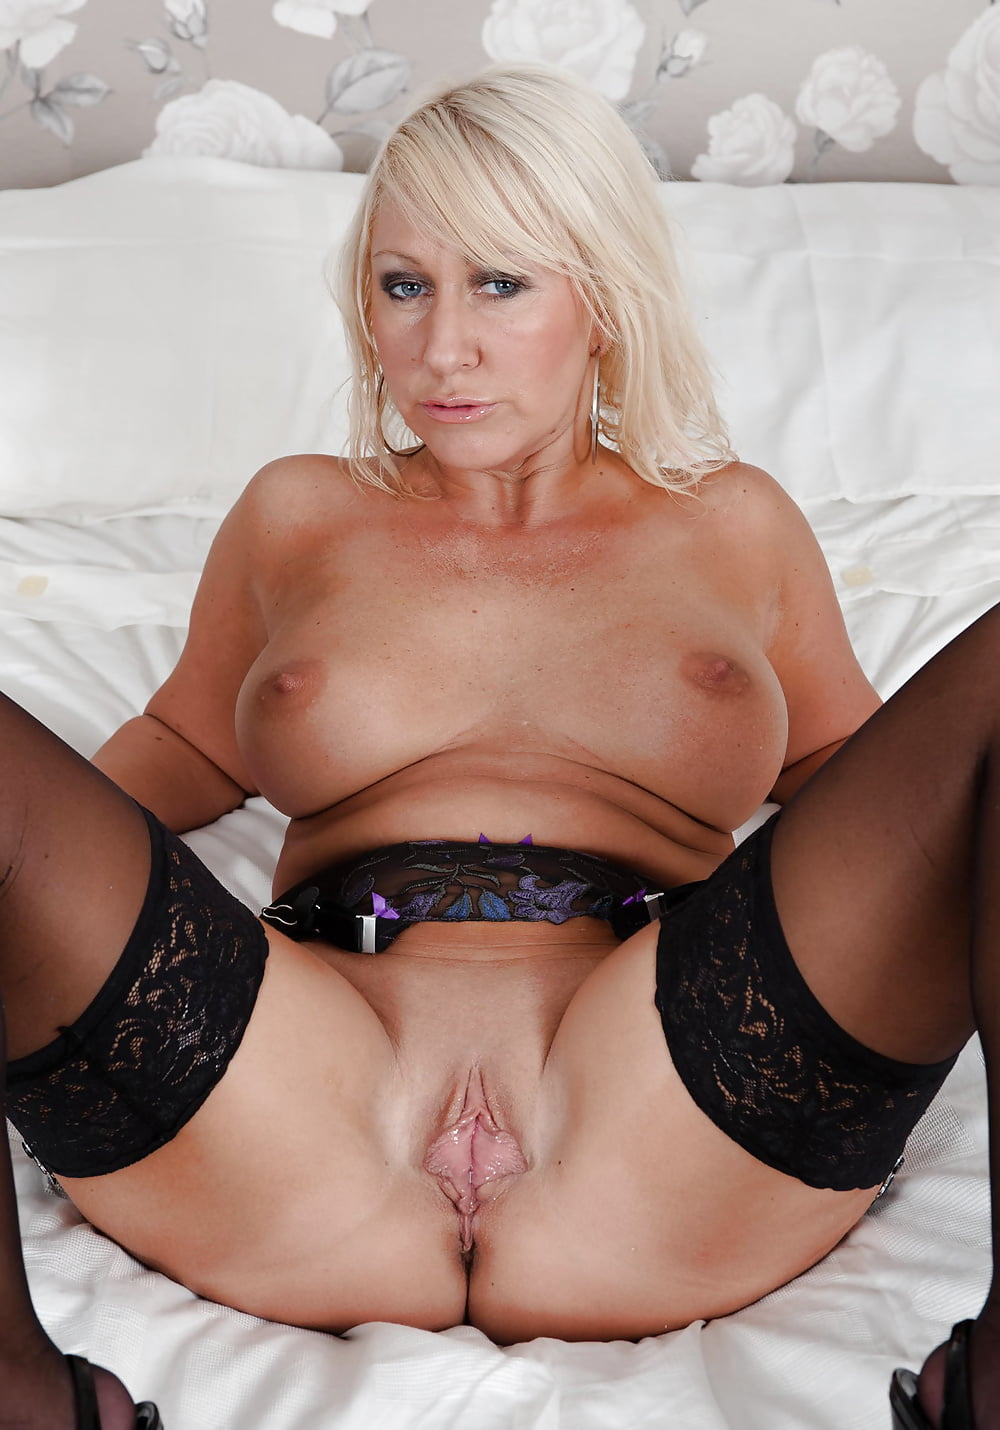 Anal porno russian mature blonde milf shaved pussy sex school girl